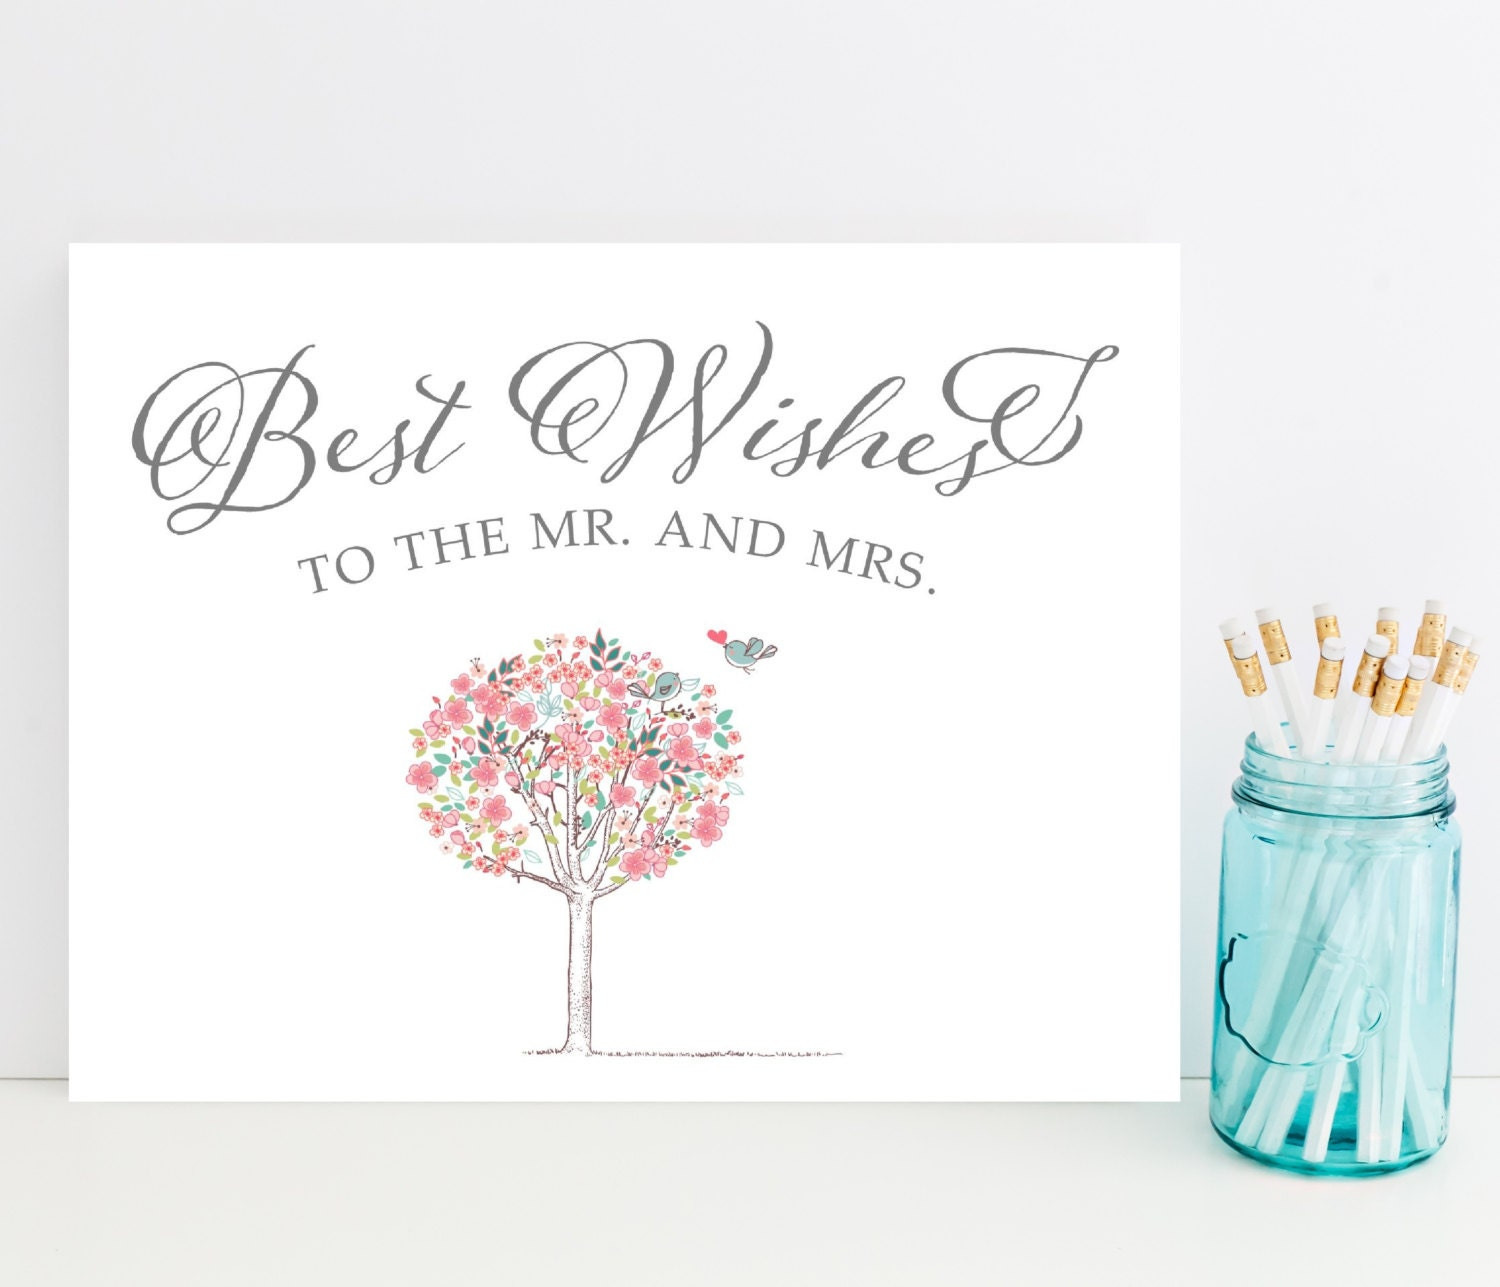 Best wishes card wedding day card sweet card for bride and for Best day for a wedding